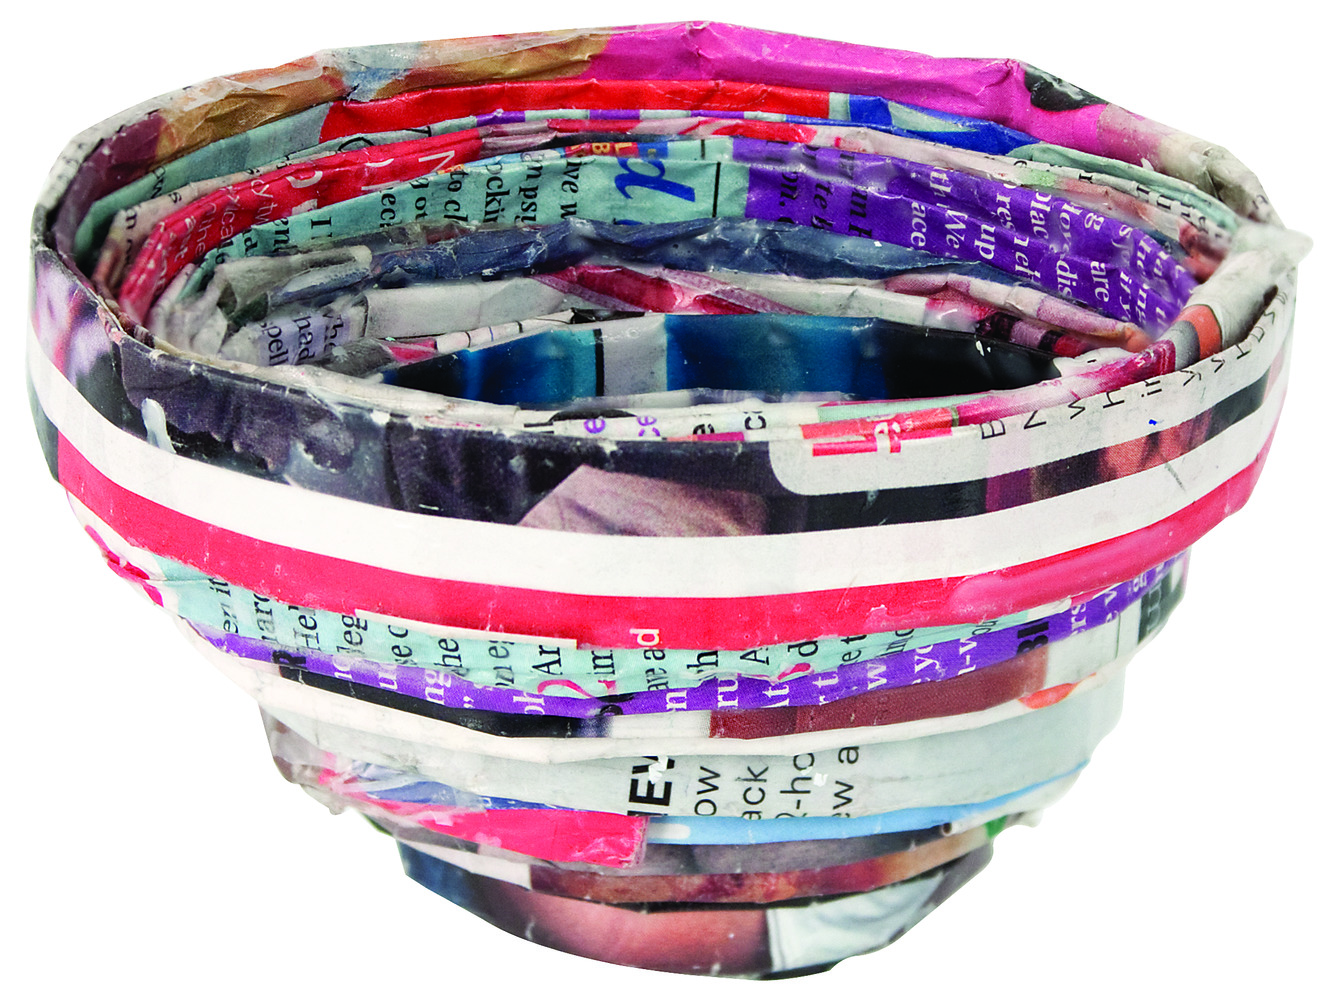 Recycled Magazine Bowls 3